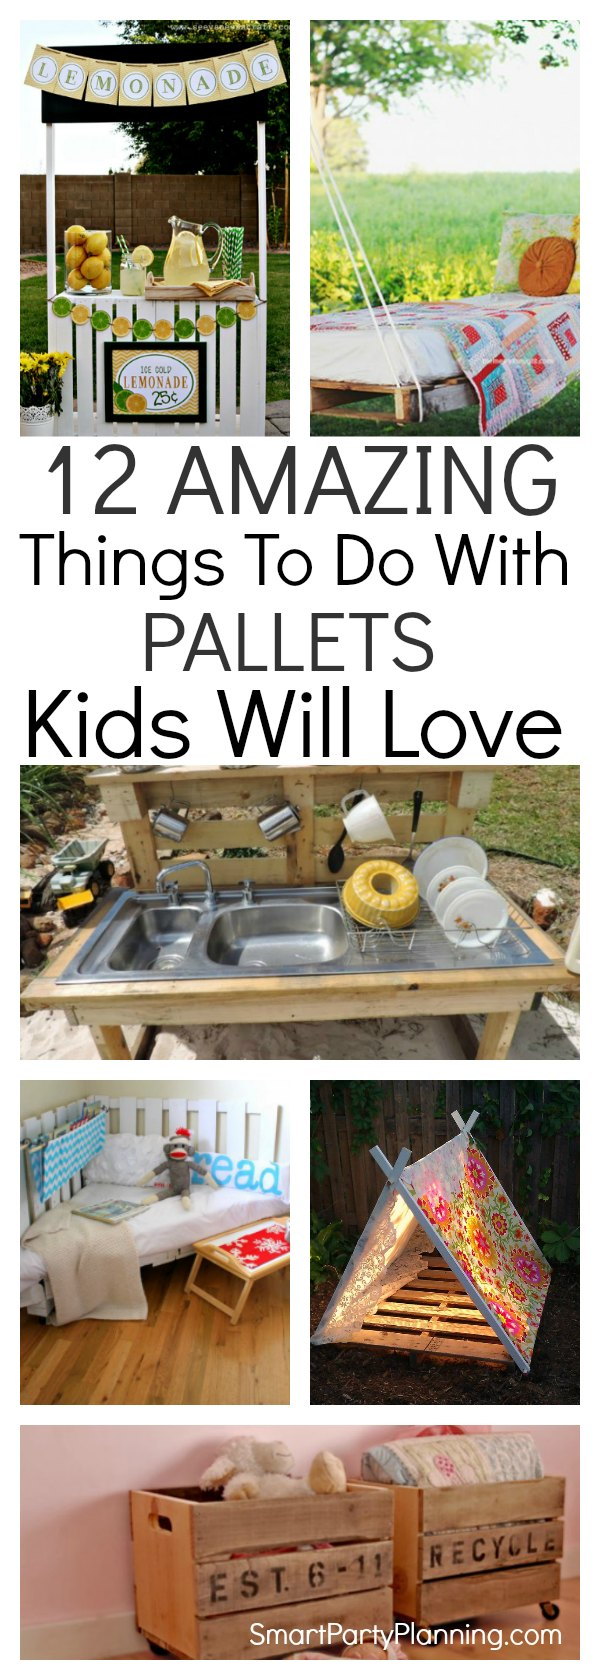 Looking for some things to do with pallets that the kids will love? This selection of DIY projects are for both the garden and in the home. But one thing is for sure, that they will all add beautiful décor to your home. 12 awesome ideas that you will have fun making and the kids will have fun playing with.